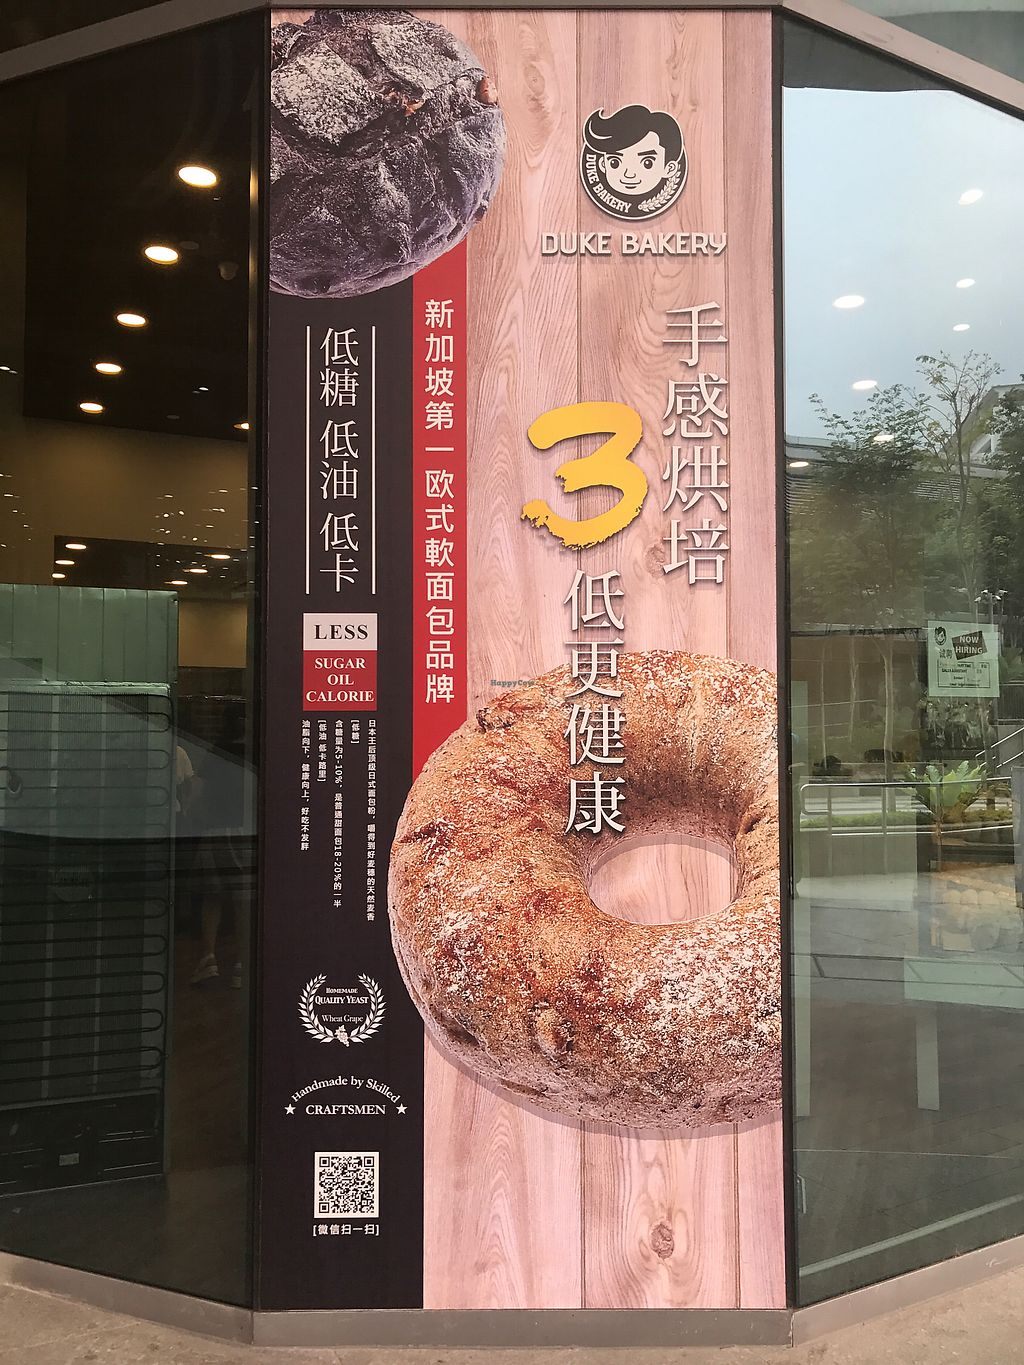 """Photo of Duke Bakery - Bedok Mall  by <a href=""""/members/profile/kkylaye"""">kkylaye</a> <br/>store front <br/> March 30, 2018  - <a href='/contact/abuse/image/114321/378142'>Report</a>"""